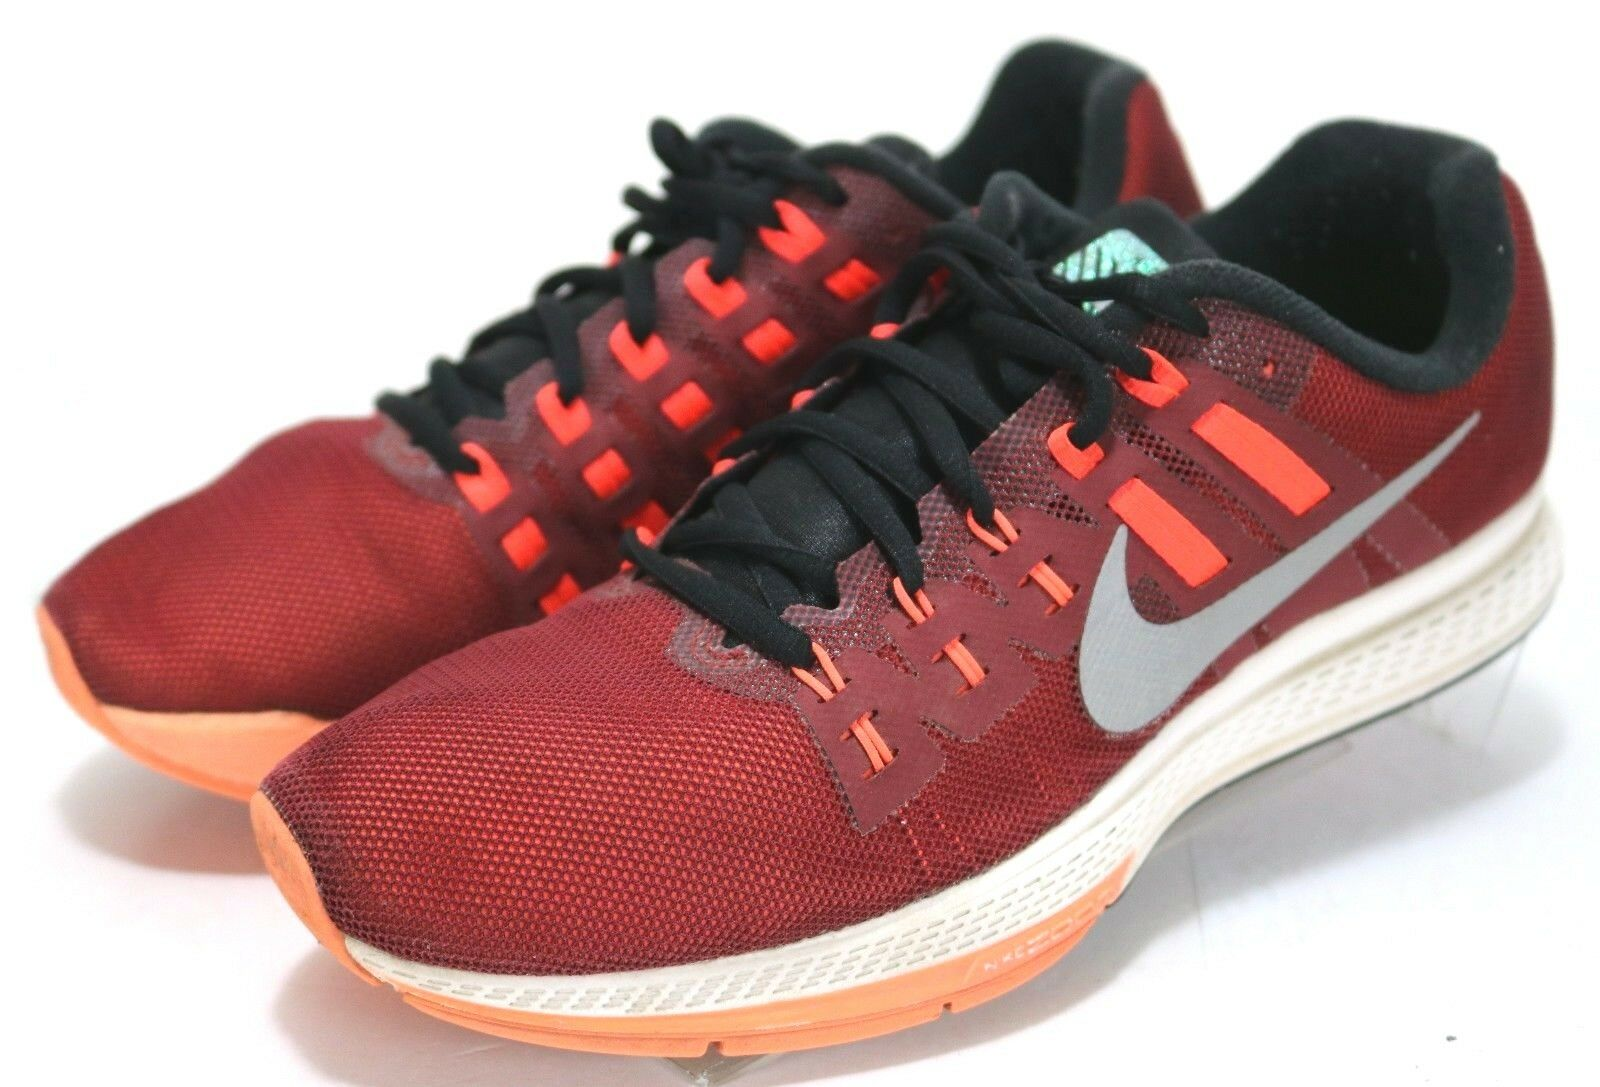 Nike Zoom Structure 19 Flash  85 Men's Running shoes Size 8.5 H2O Repel Red